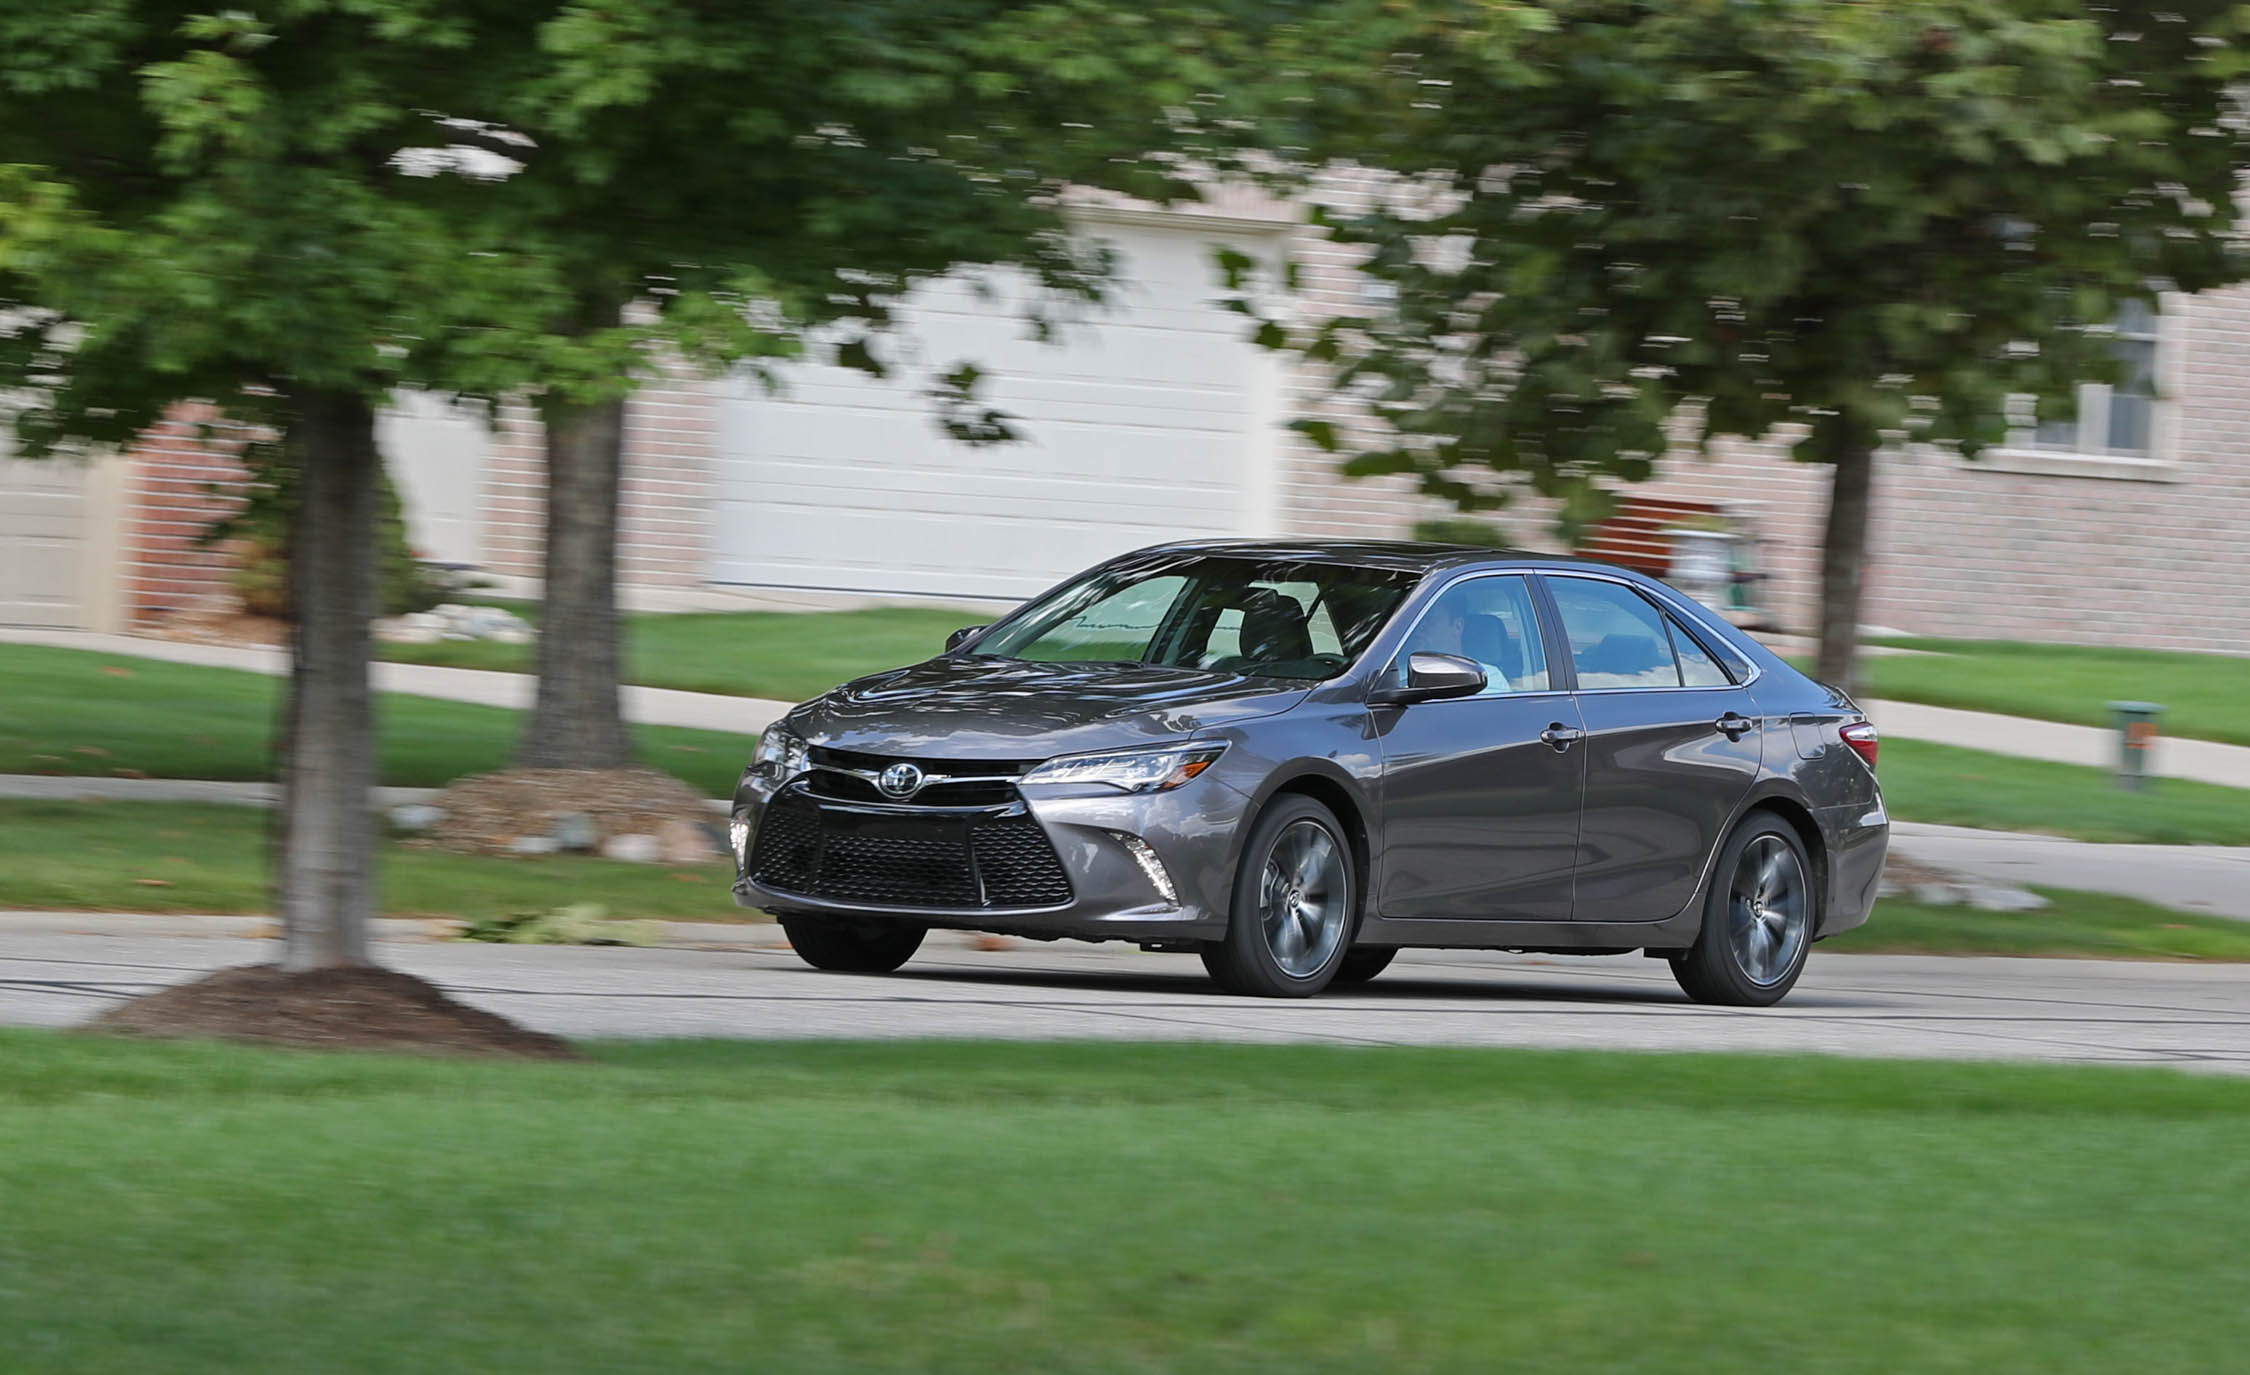 2017 Toyota Camry Test Drive Front And Side View (View 10 of 37)